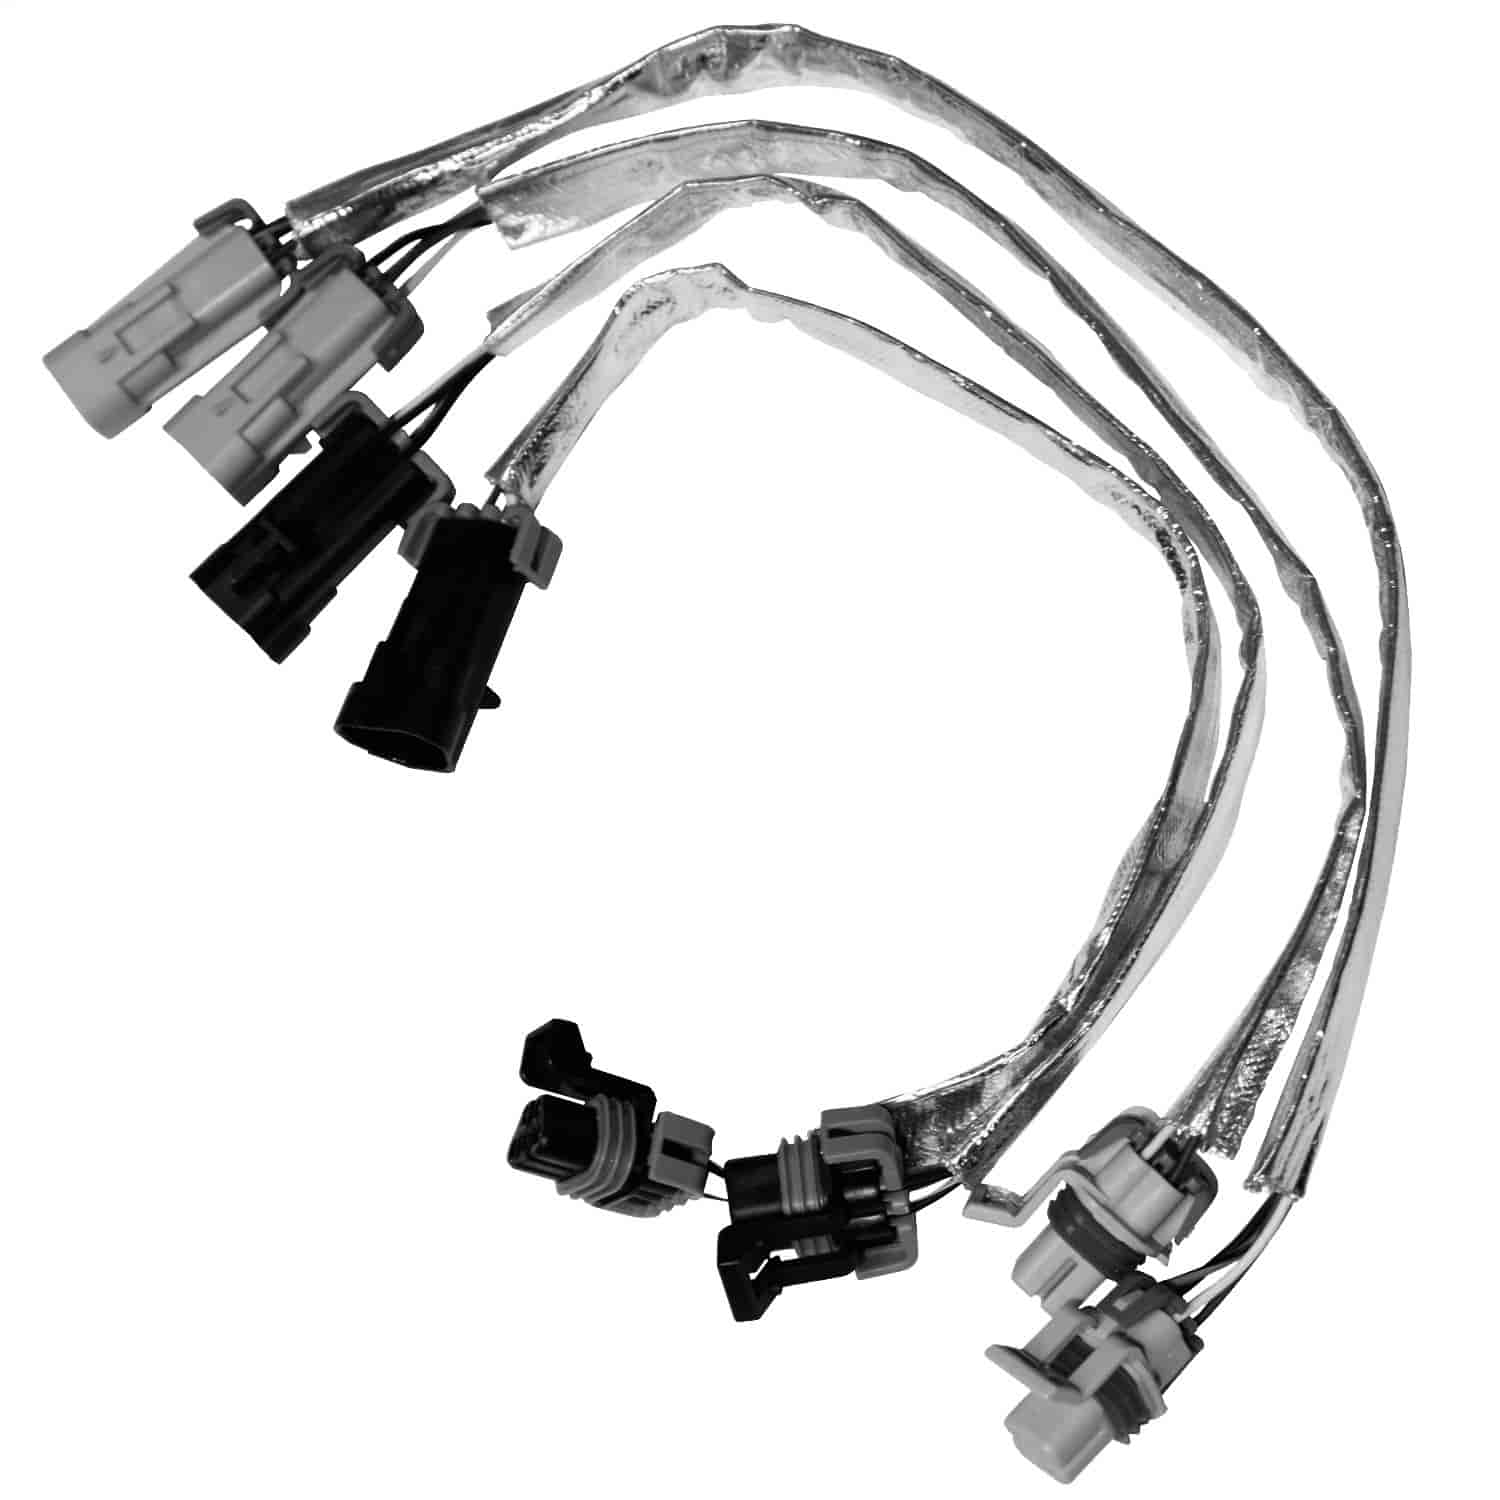 Kooks Custom Headers EX682-Z - Kooks Oxygen Sensor Harnesses